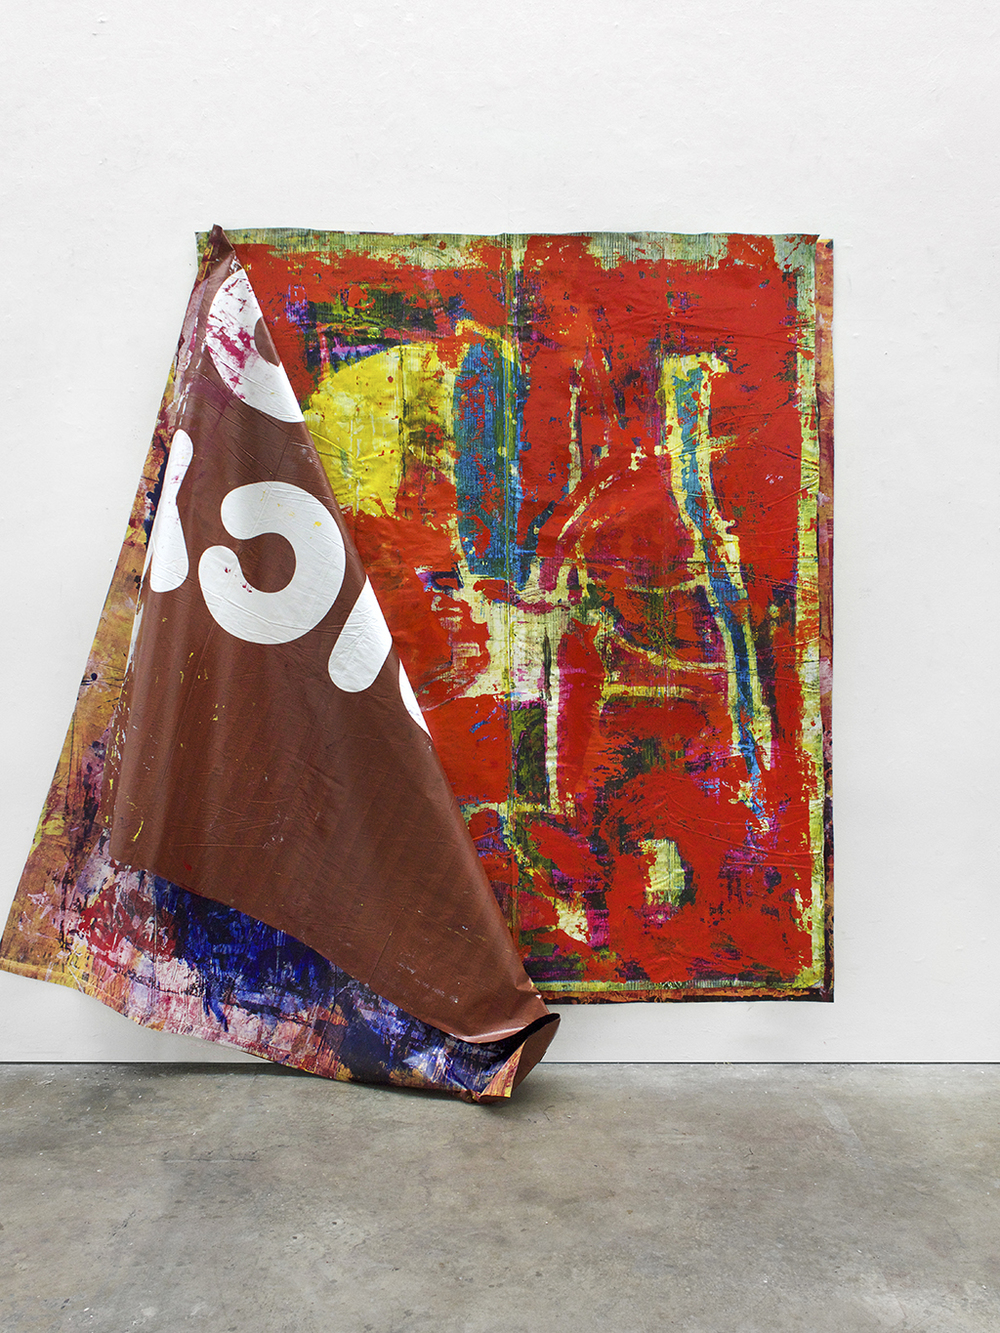 Kyle Goldbach |  Unfolding (Container II) , 2015, paint/ink on billboard vinyl, 96 x 78 inches